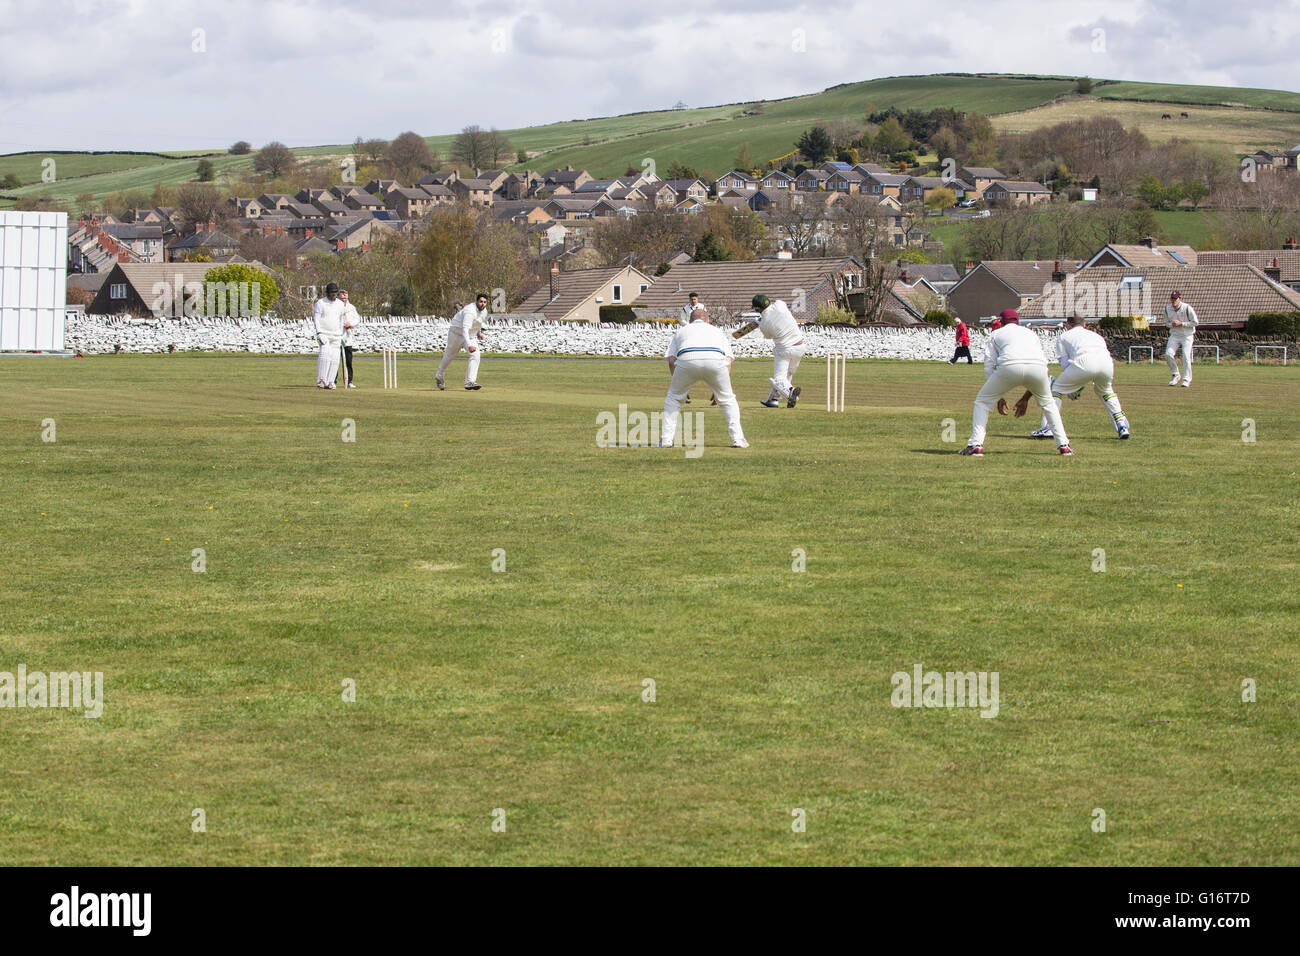 English village cricket match with bowler delivering ball to a batsman - Stock Image